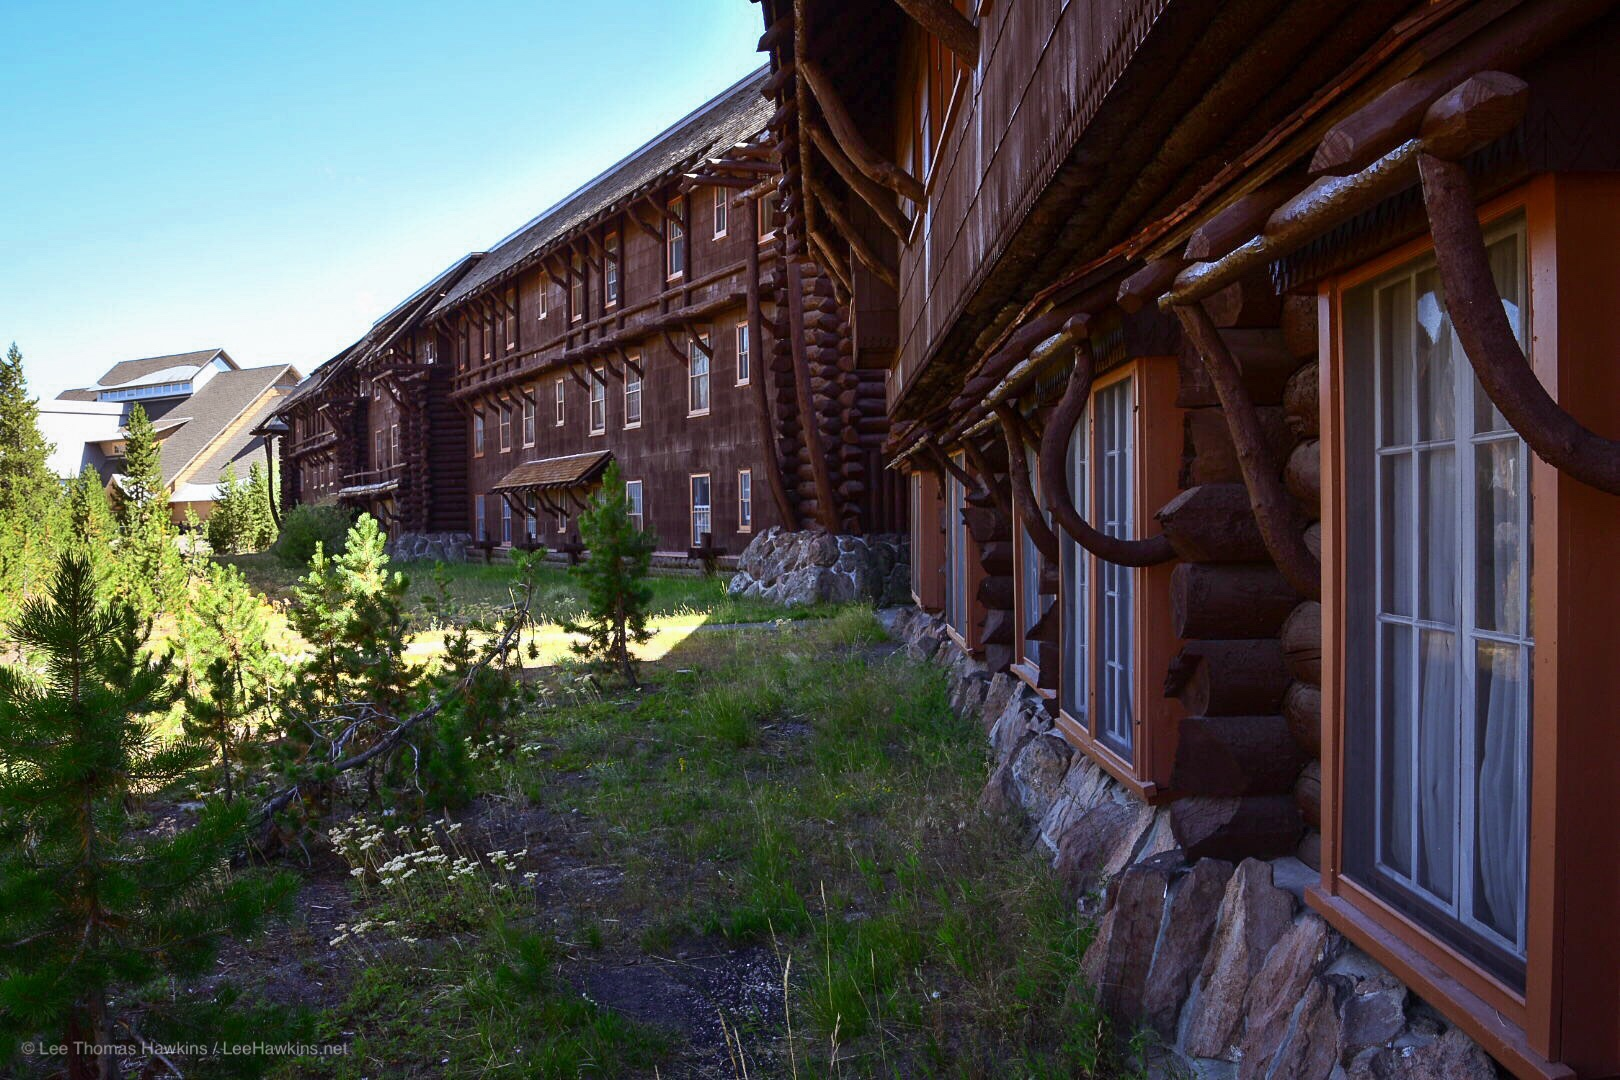 Bent logs form the many intricate details of a rustic wooden hotel building.